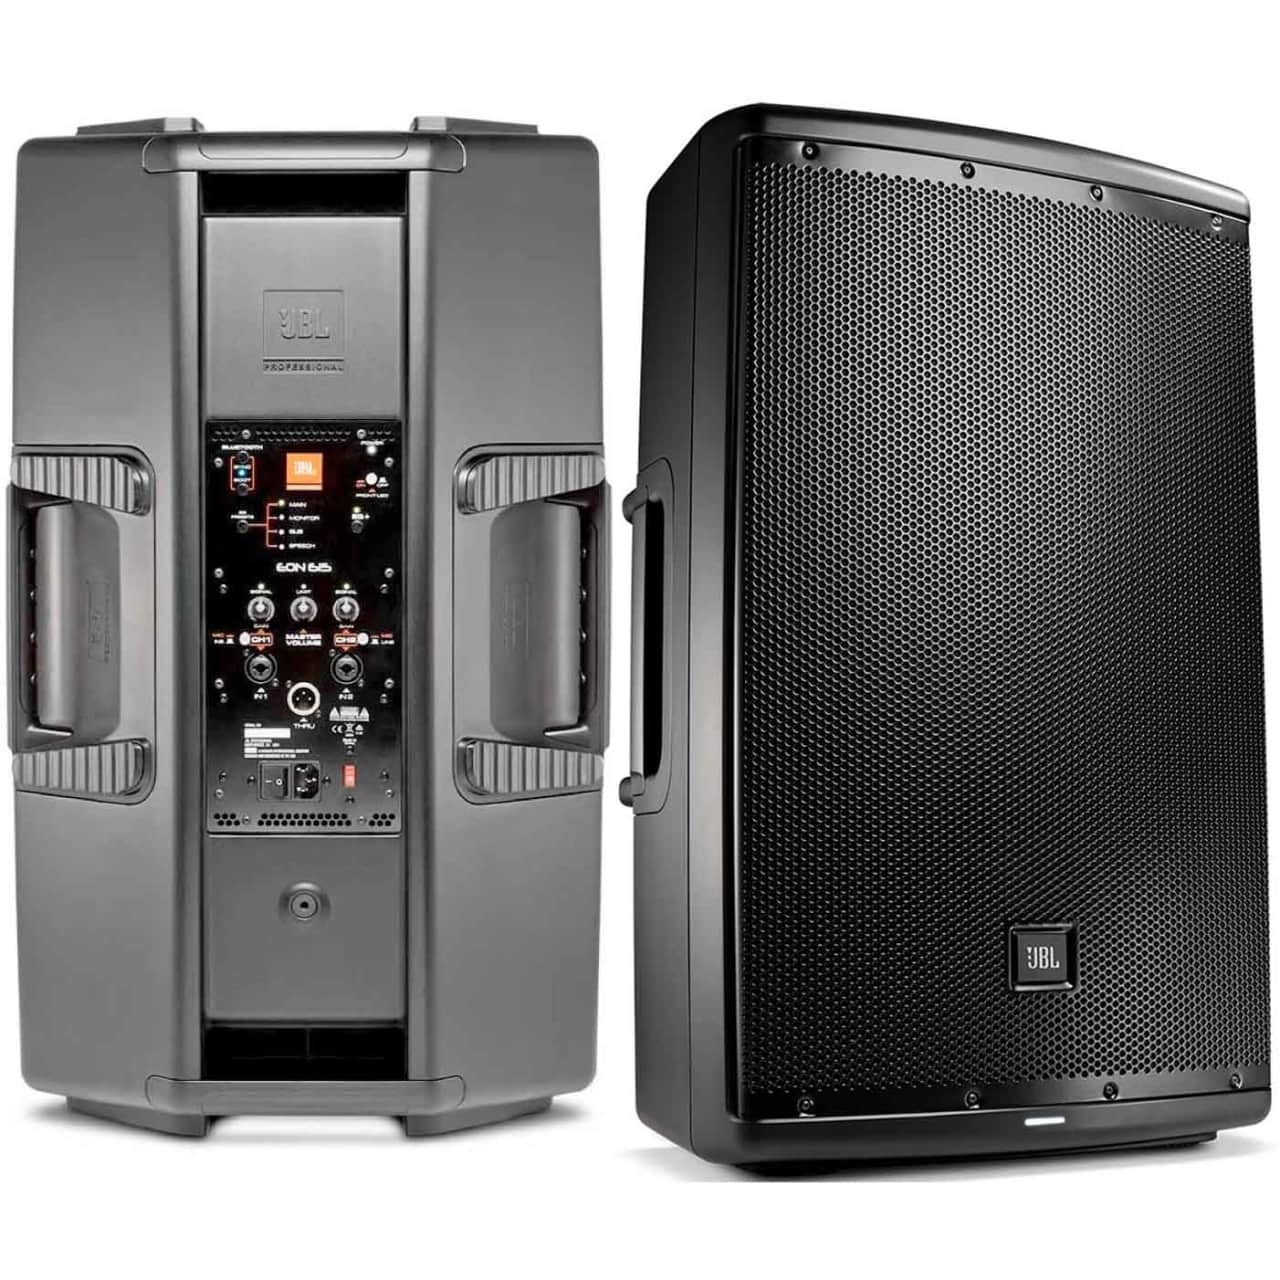 jbl eon 615 1000w 15 2 way powered speaker system with reverb. Black Bedroom Furniture Sets. Home Design Ideas